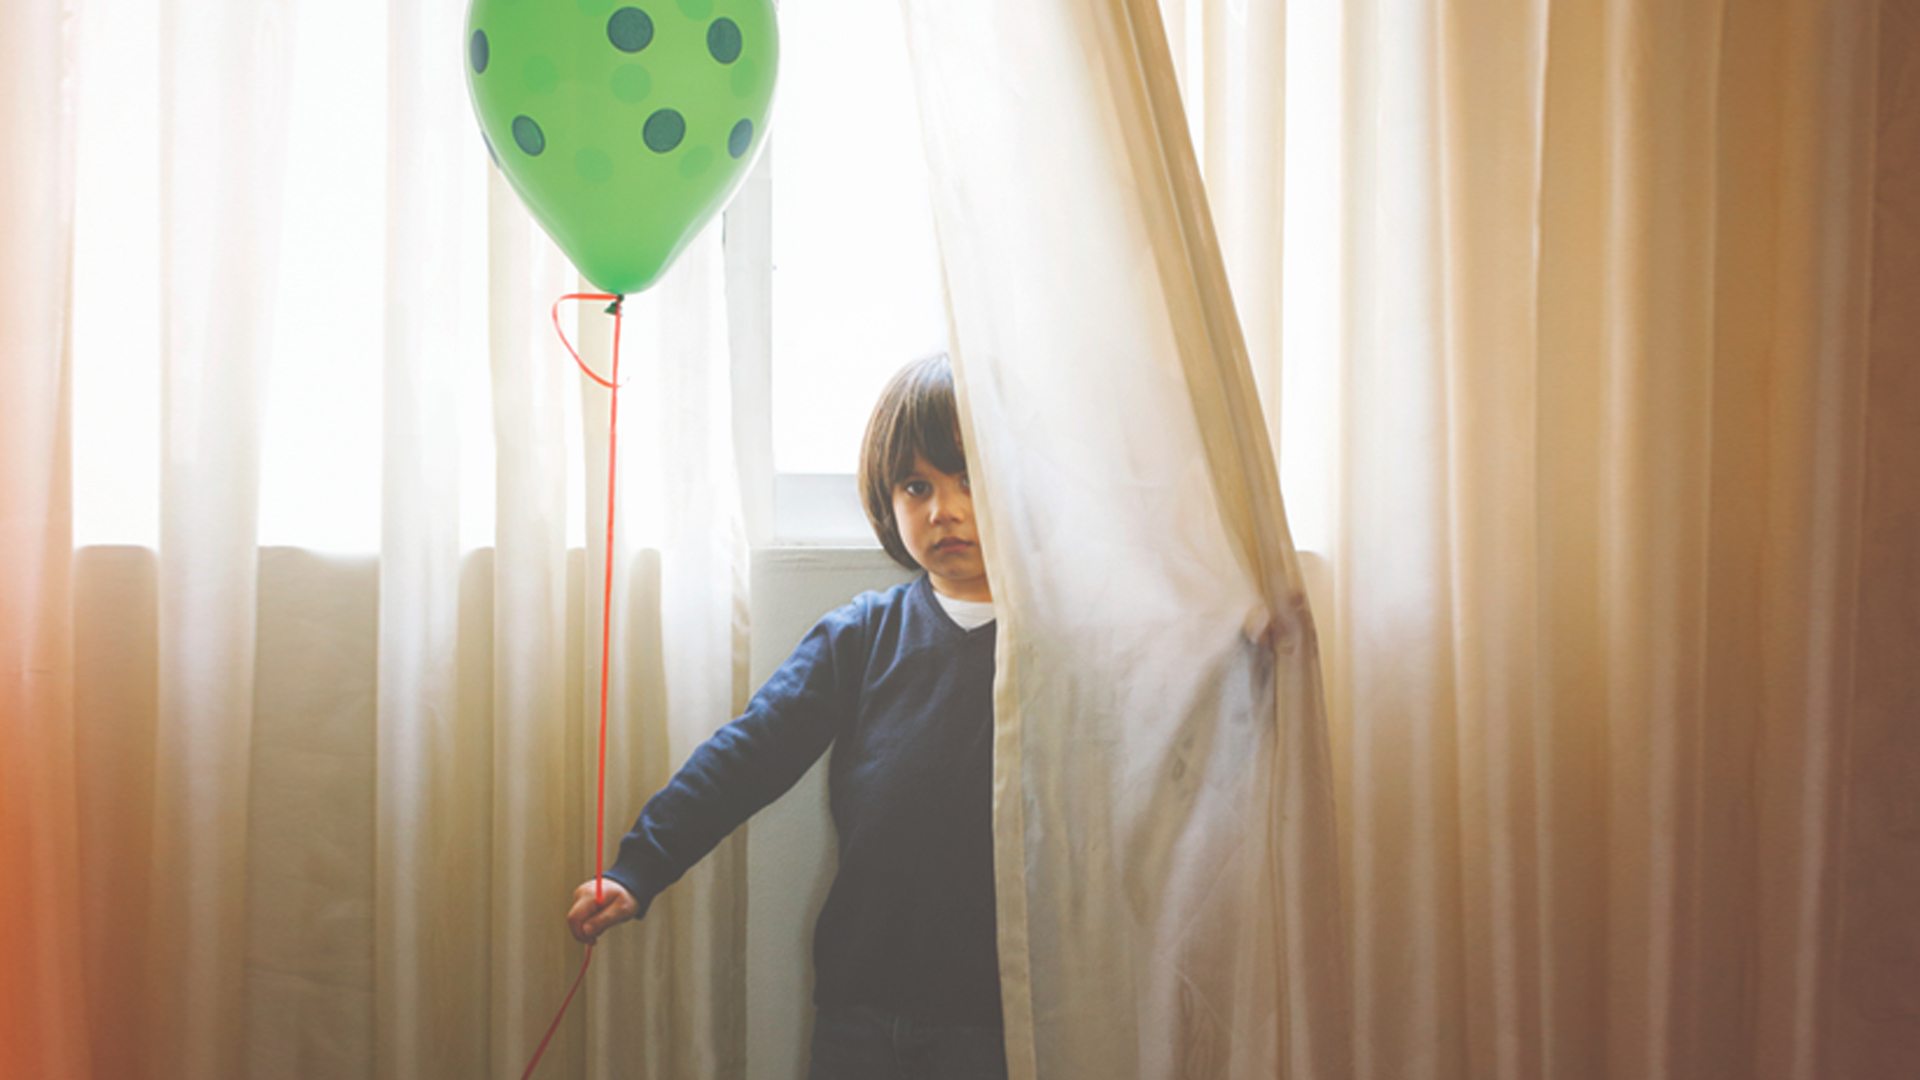 Boy hiding behind curtain holding a balloon in his hand